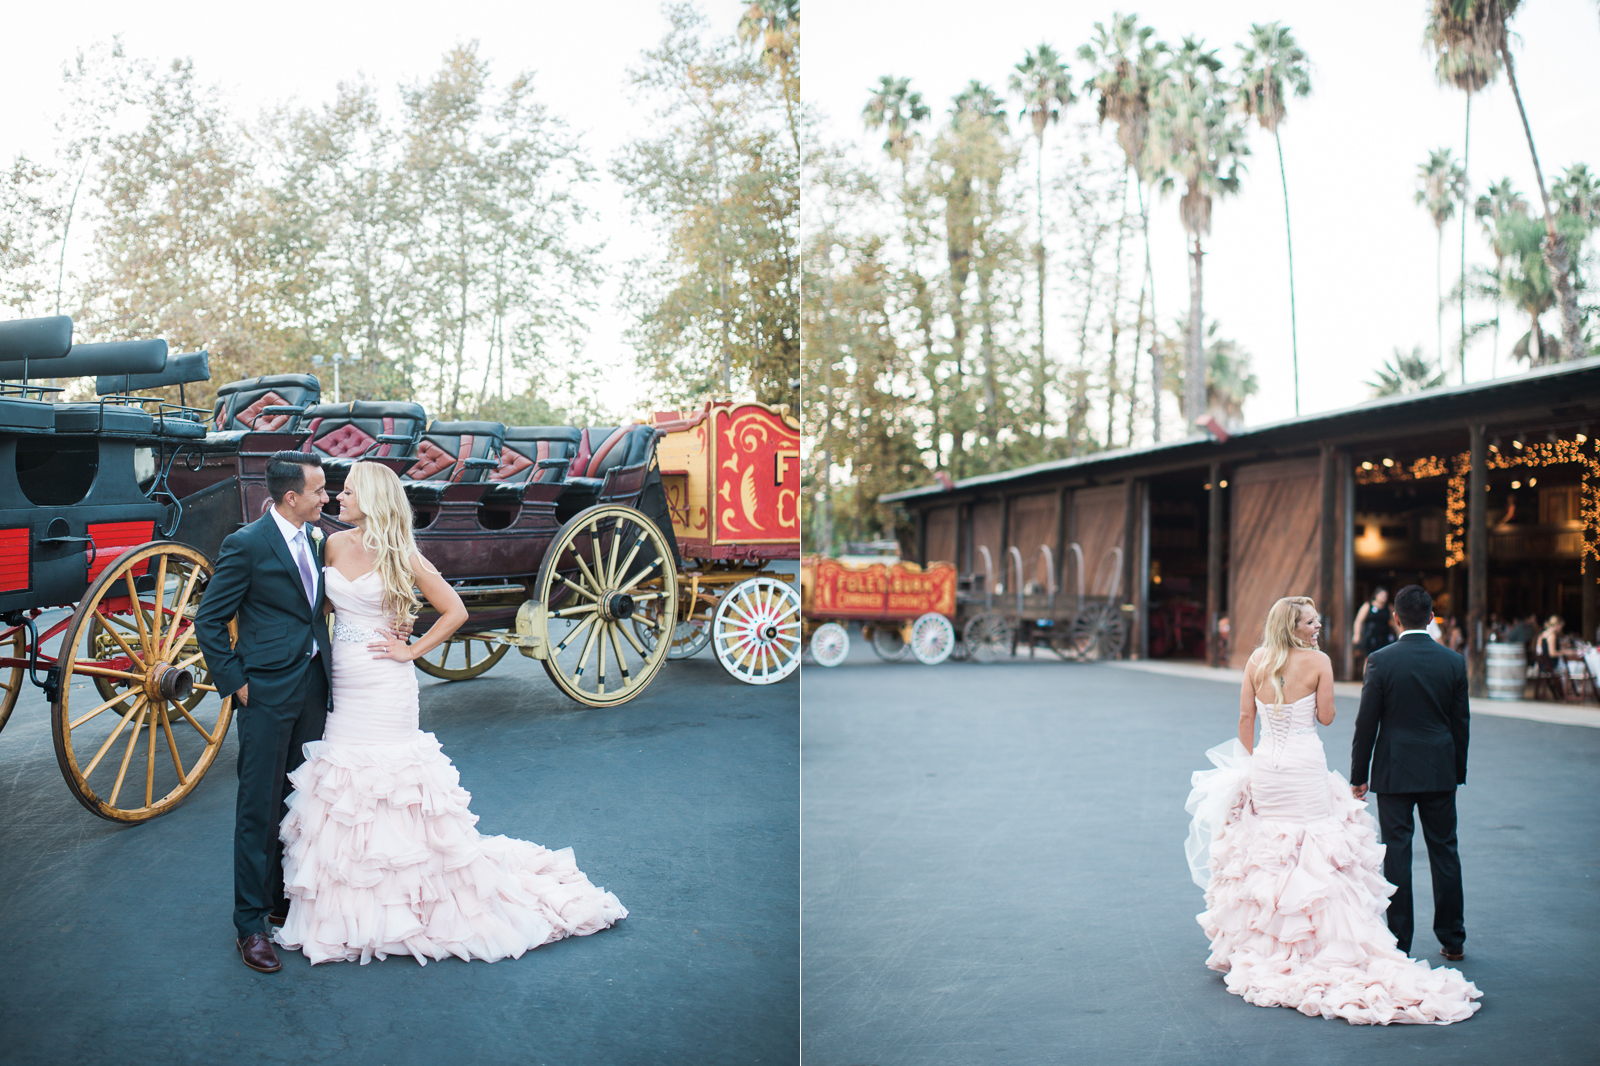 Bride and groom during portrait session at Old Carriage Museum wedding reception.